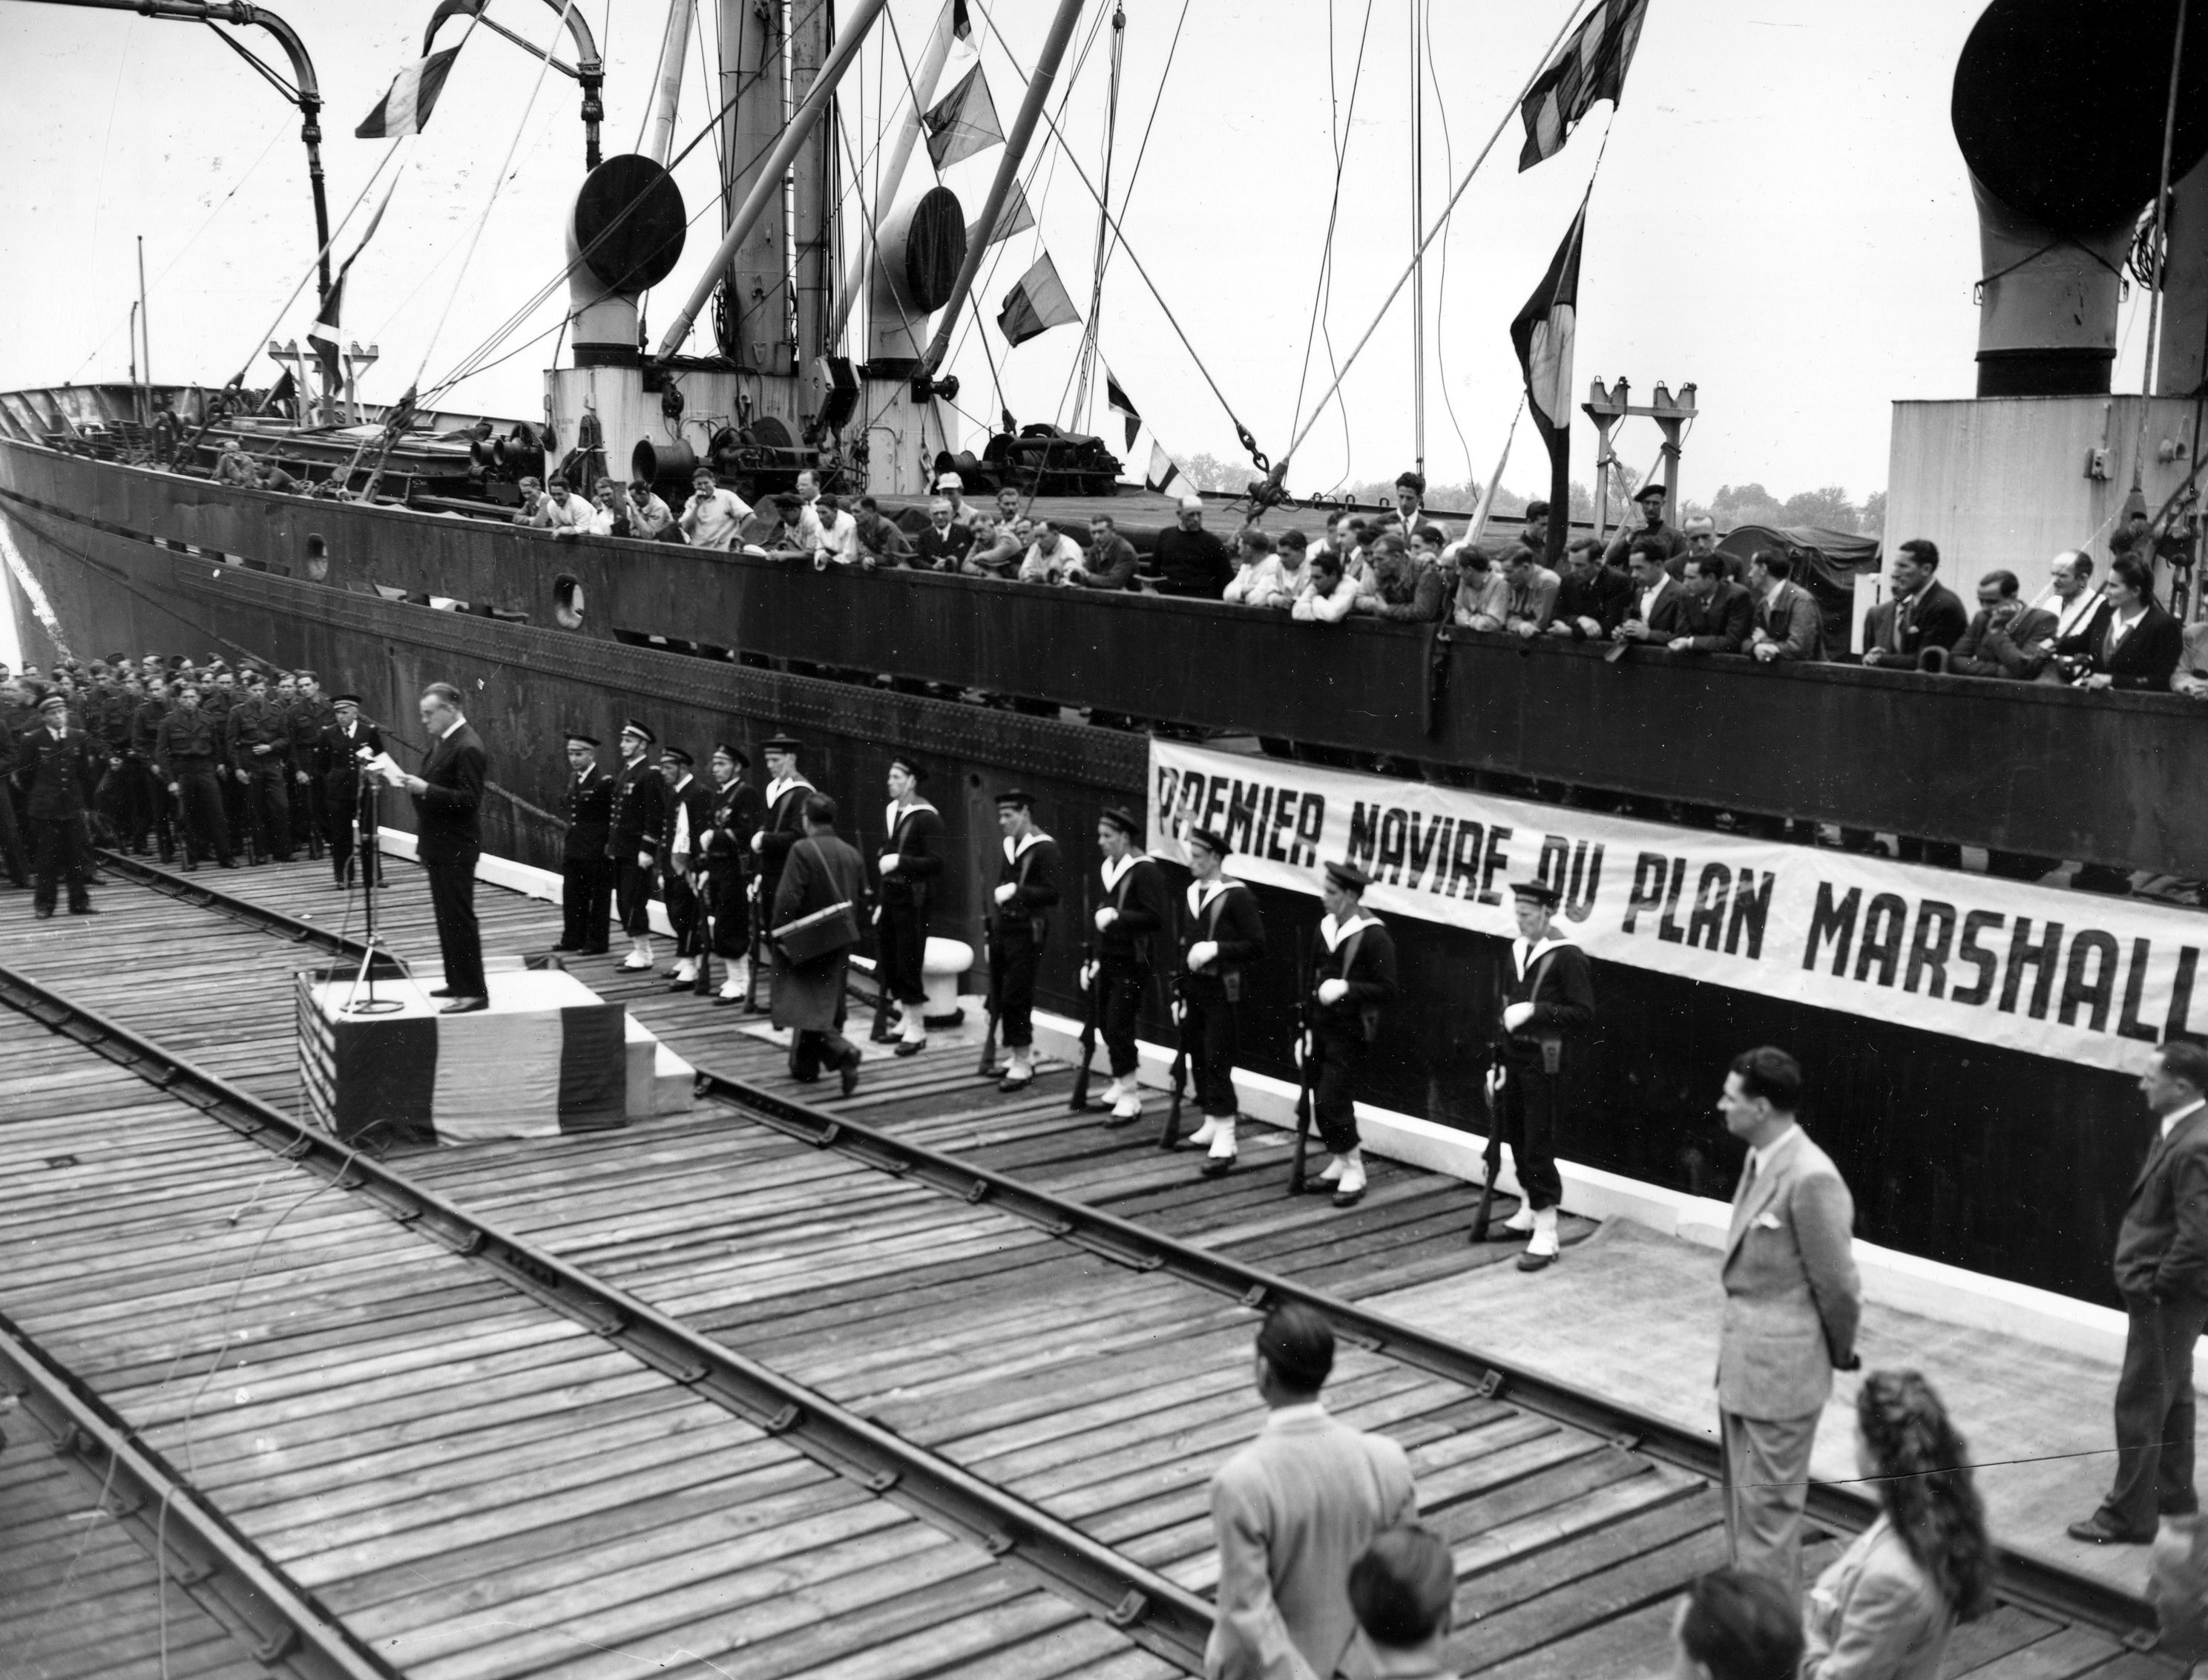 """American ambassador to France, Jefferson Caffery, speaks during a ceremony at the harbor of Bordeaux, France, on May 10, 1948. The celebration is marking the arrival of the """"John H. Quick,"""" carrying 8,800 tons of wheat as the first ship bringing aid to France under the Marshall Plan."""